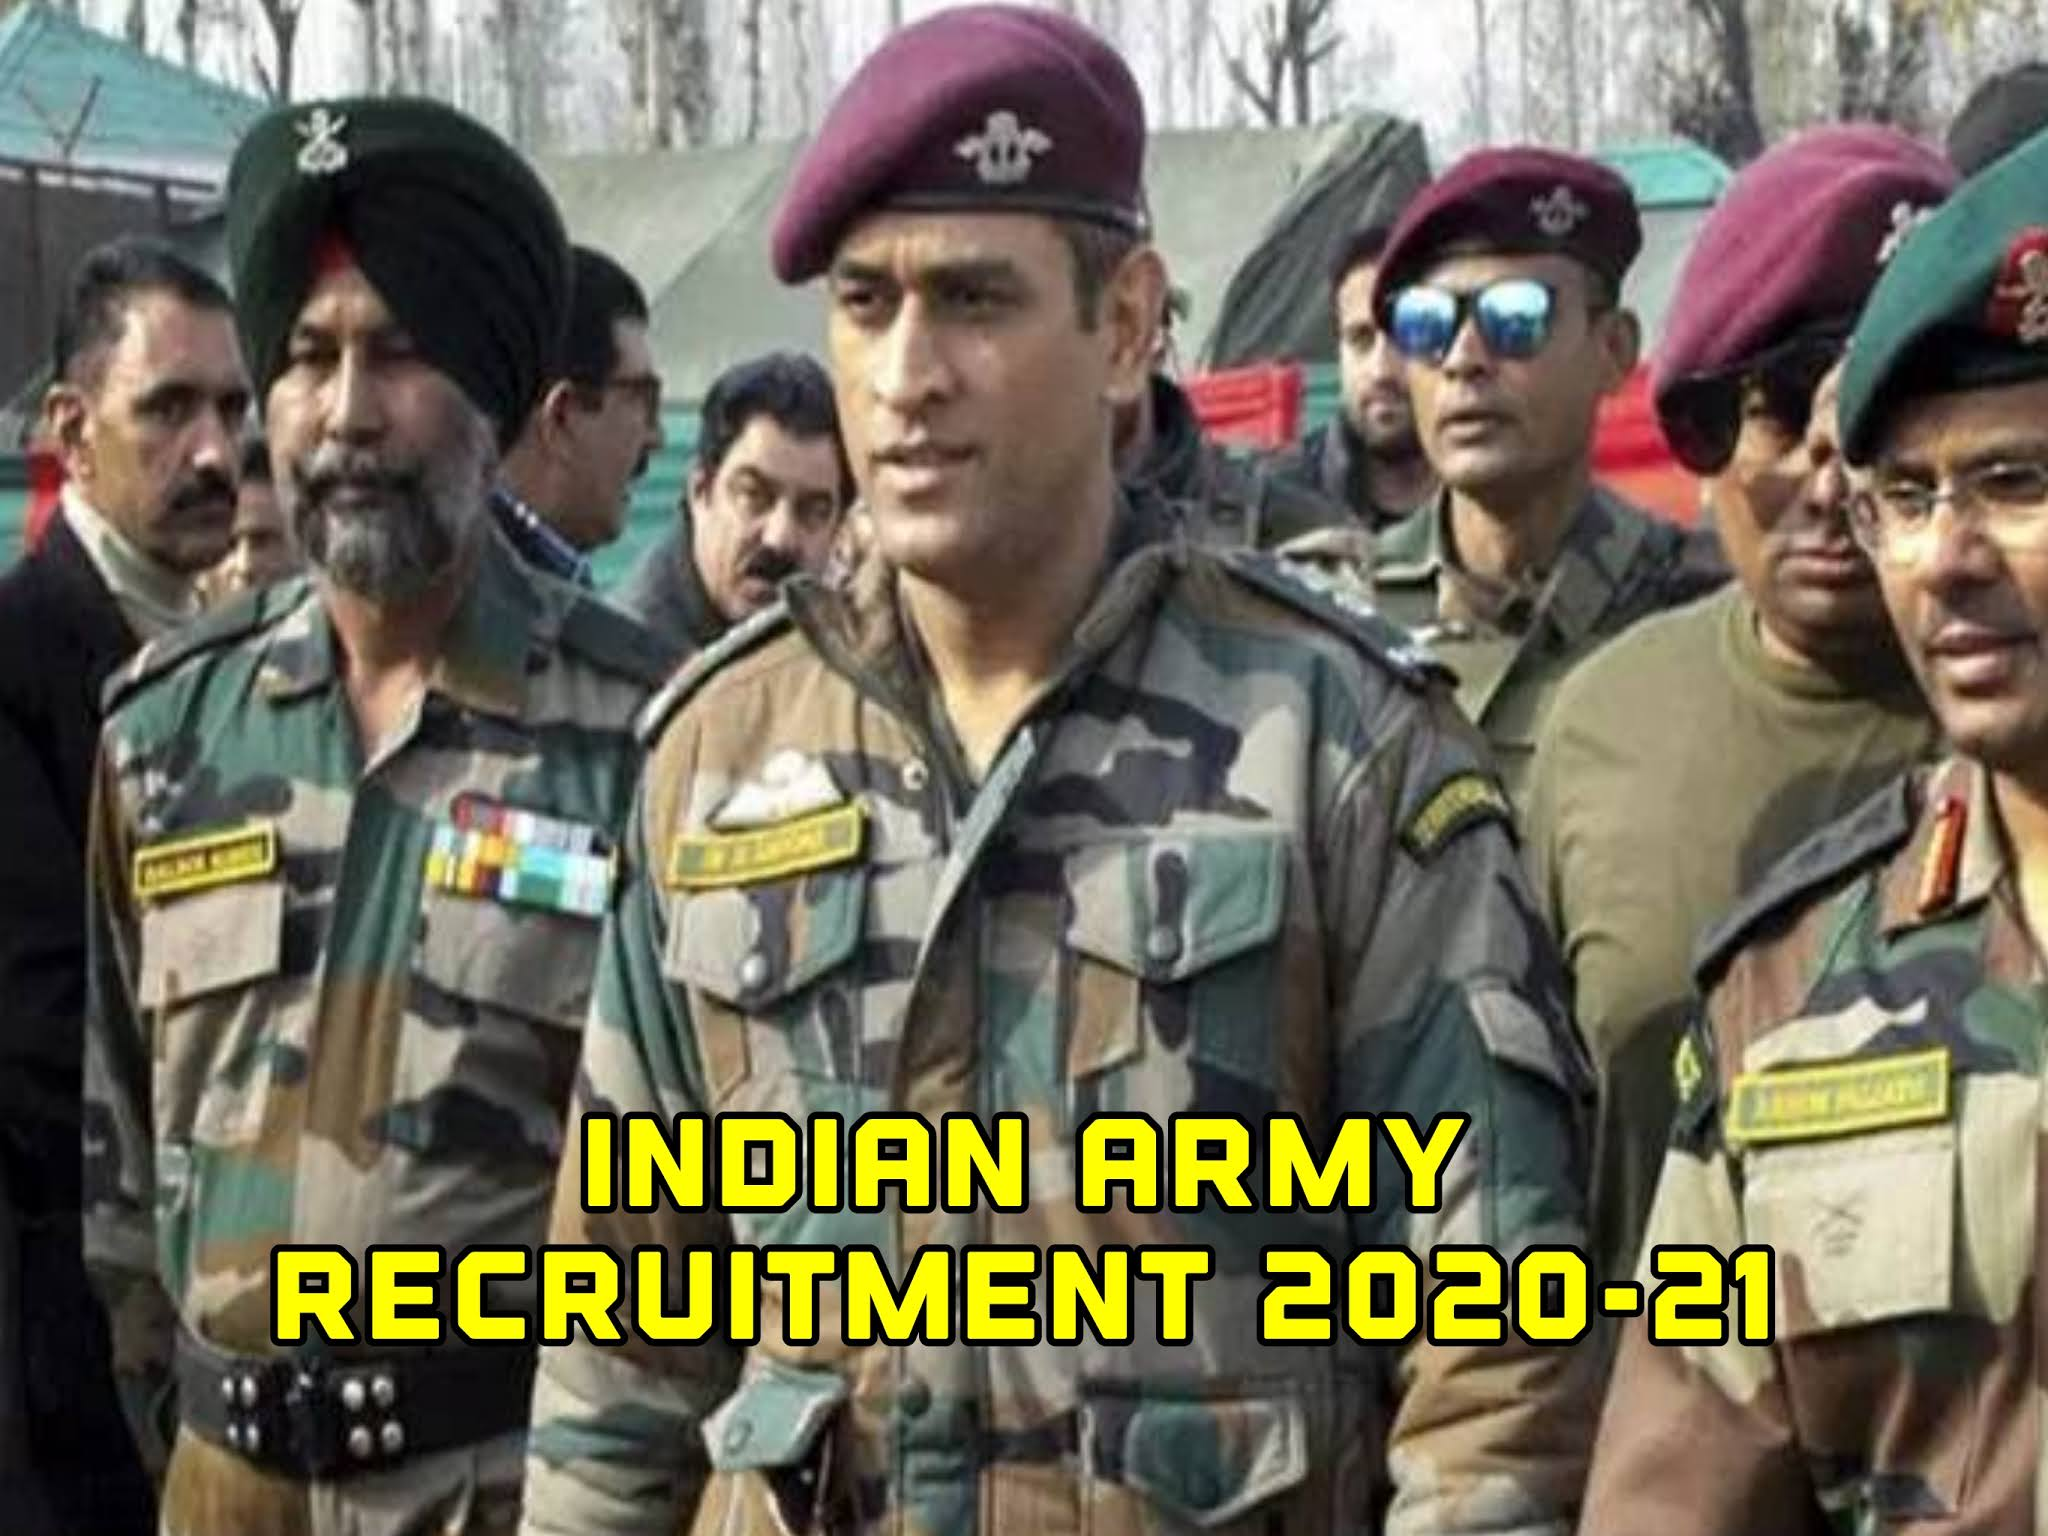 Indian Army Recruitment 2020-21 : Open Rally At Devbhoomi Dwarka